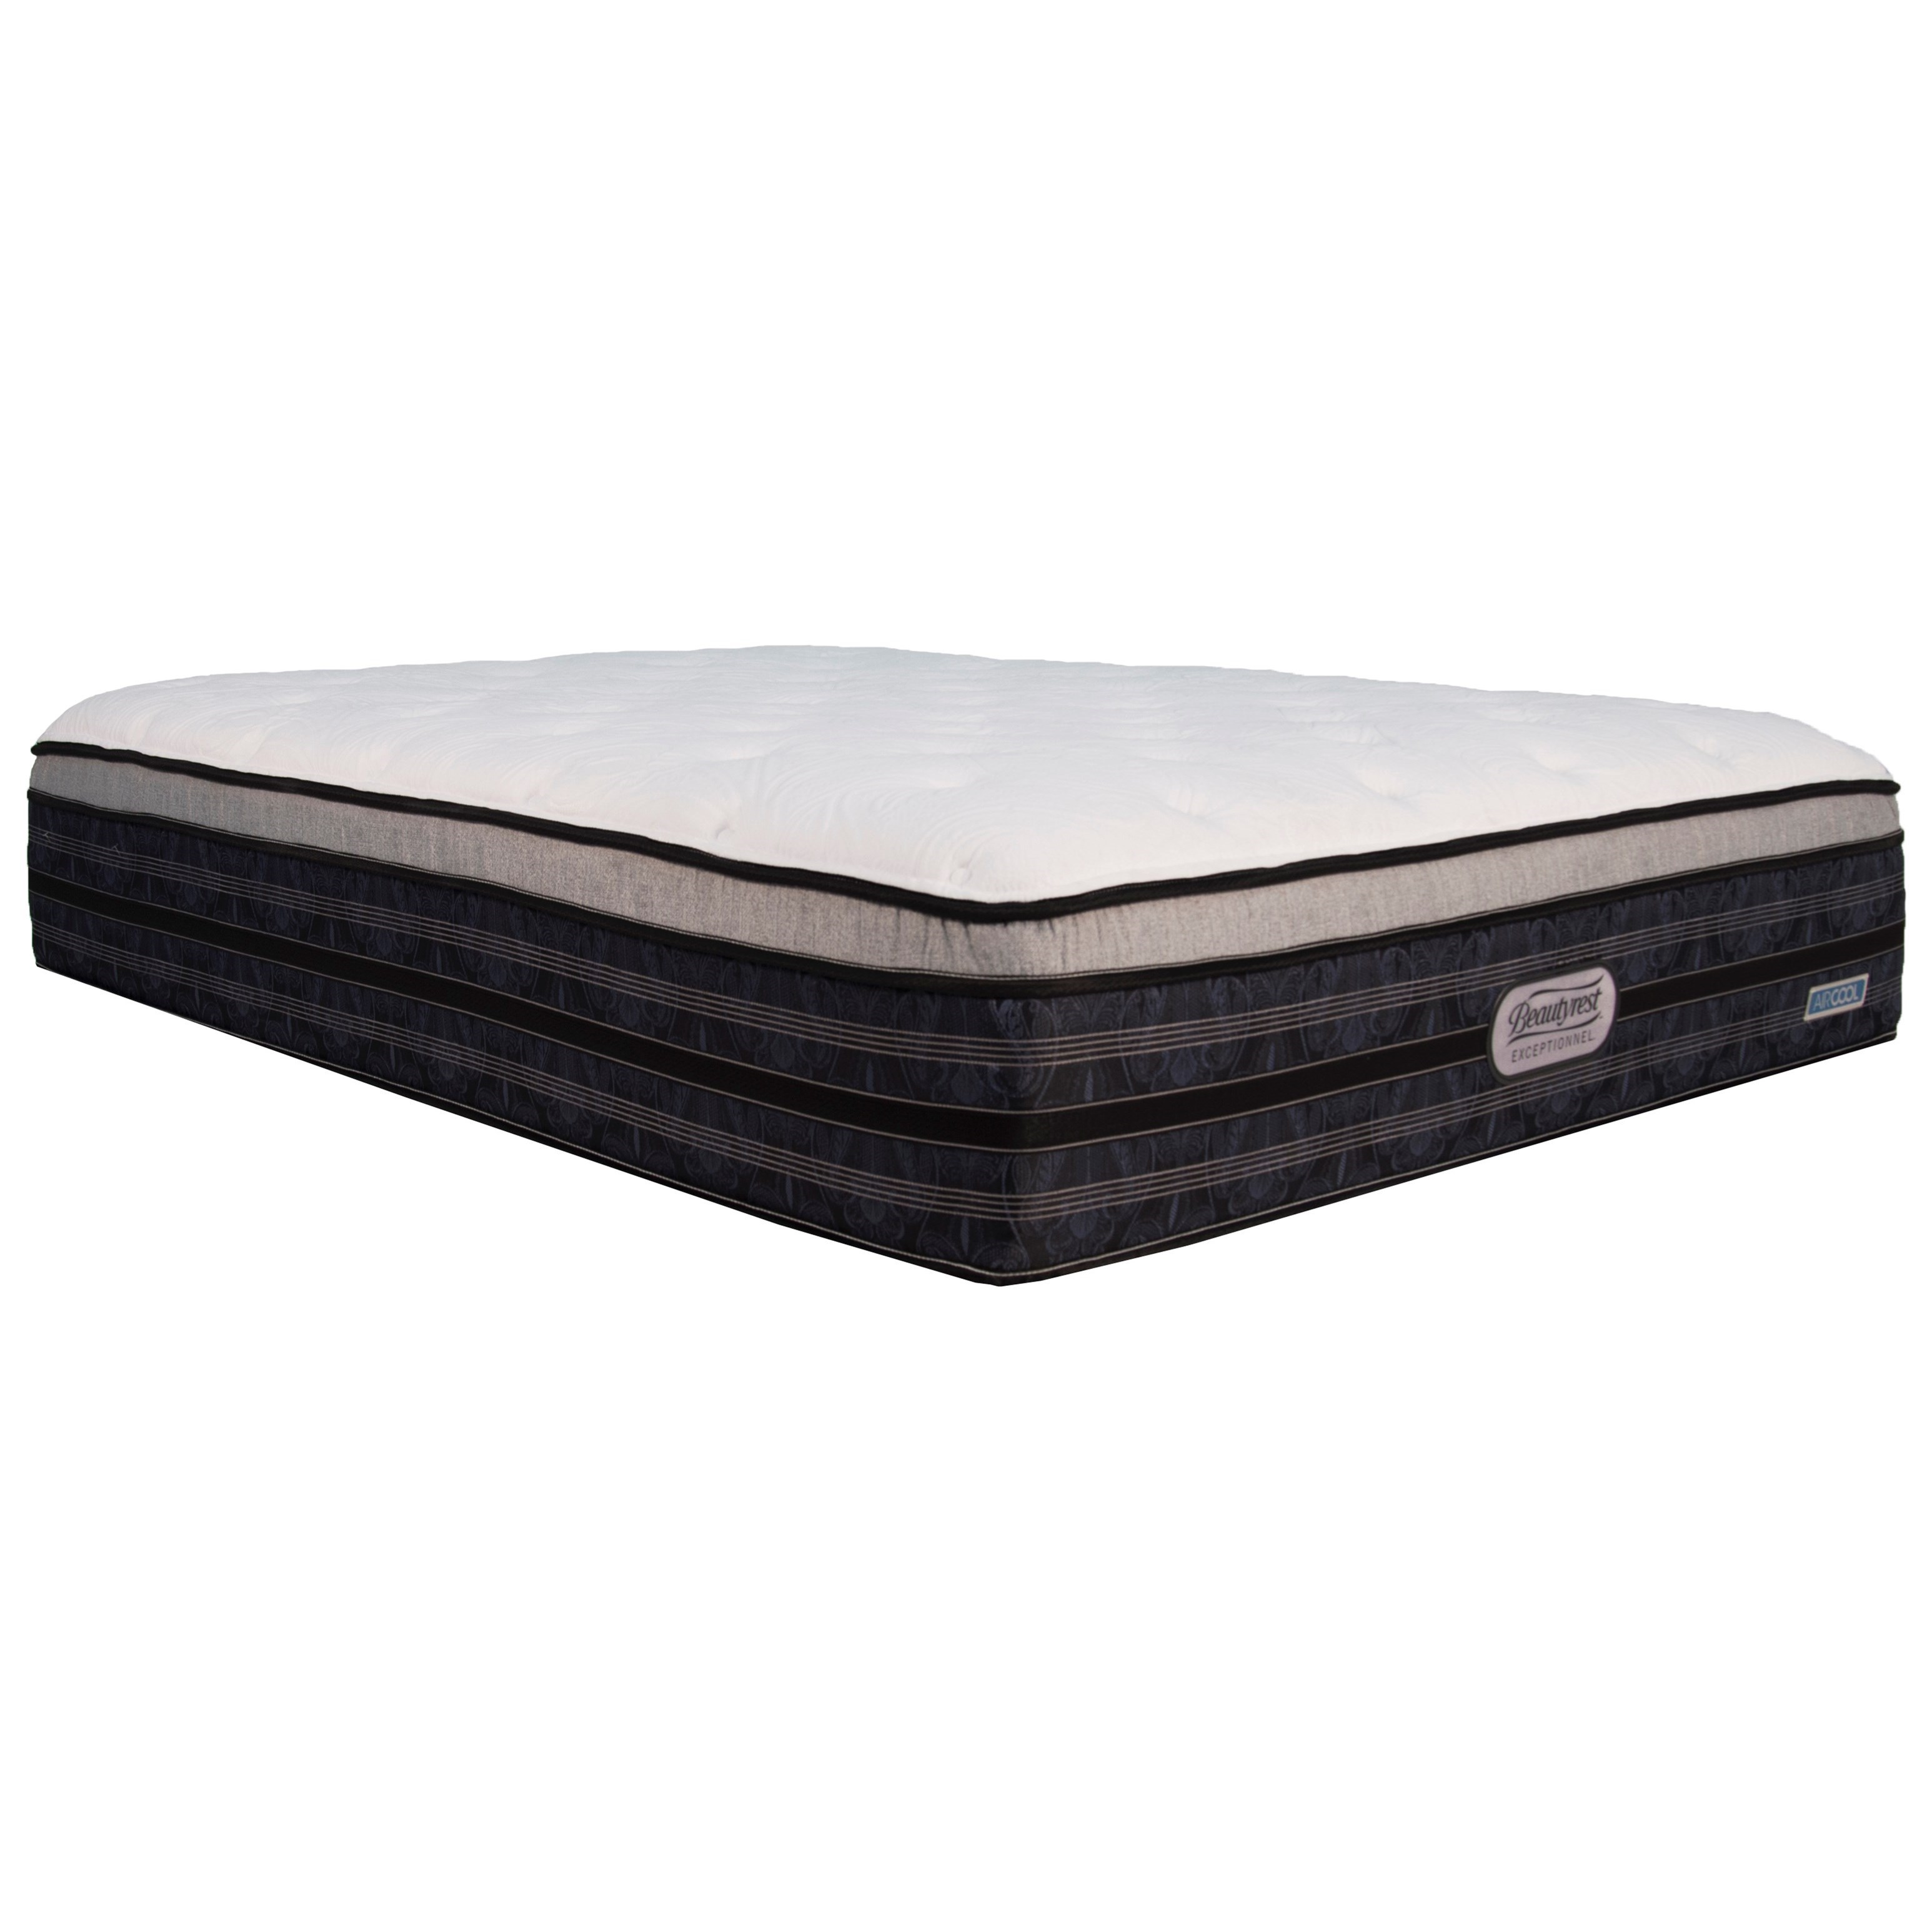 BR Exceptionnel Saffron CT Plush Full Comfort Top Plush Mattress by Beautyrest Canada at Jordan's Home Furnishings